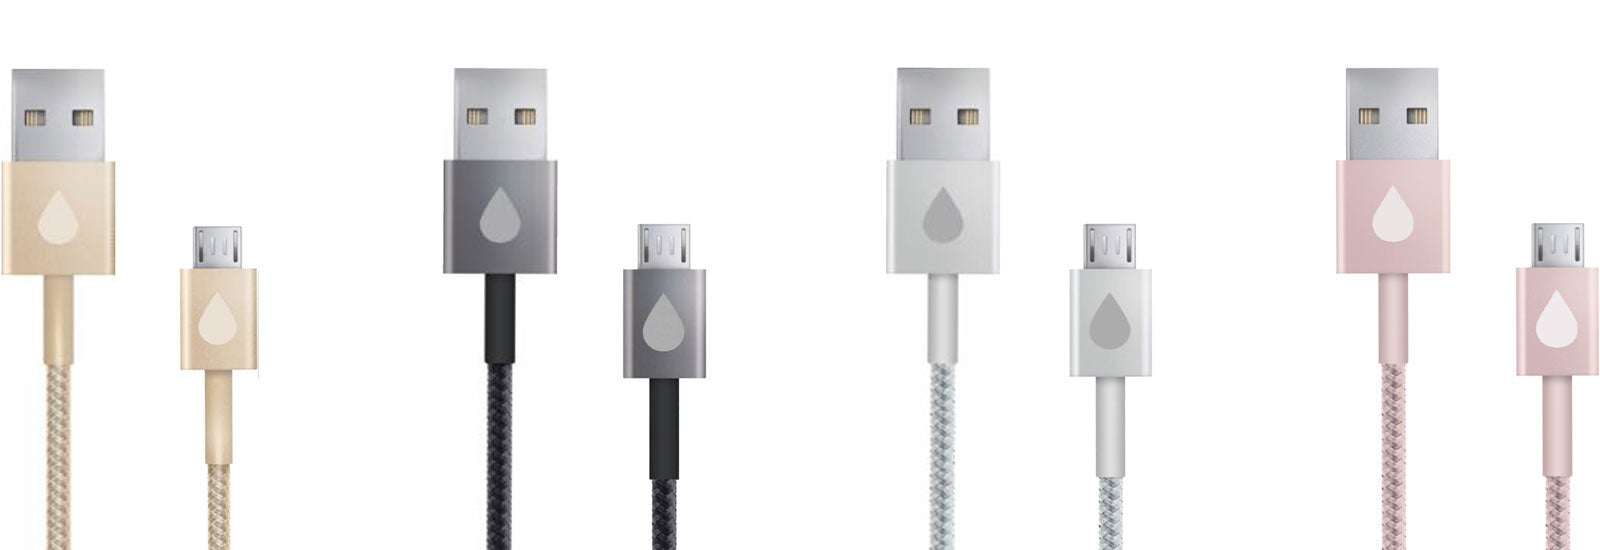 JUICIES+ with Lightning Connector comes in 4 colors